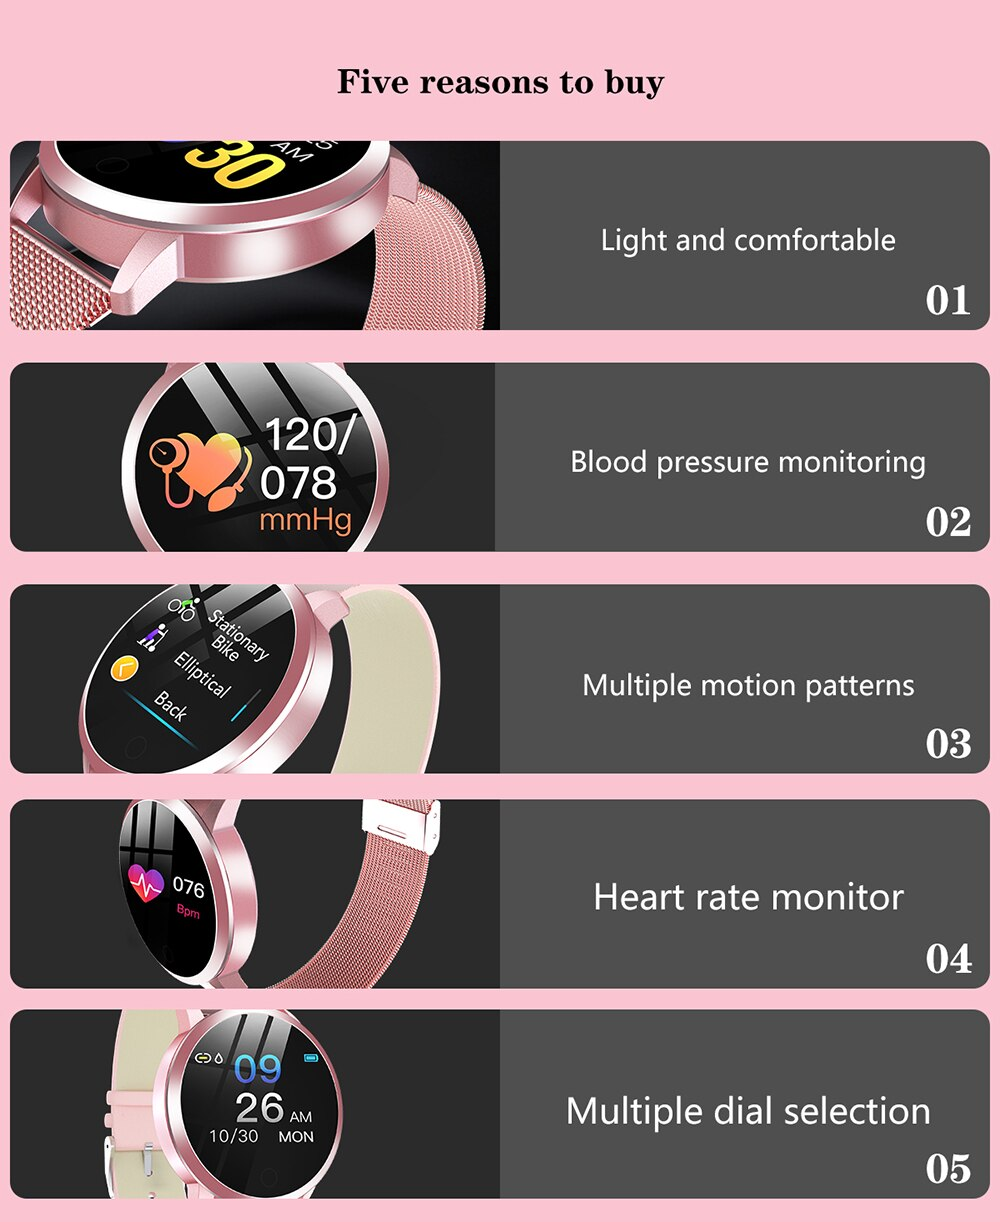 Reasons To Buy Smart Watch style=